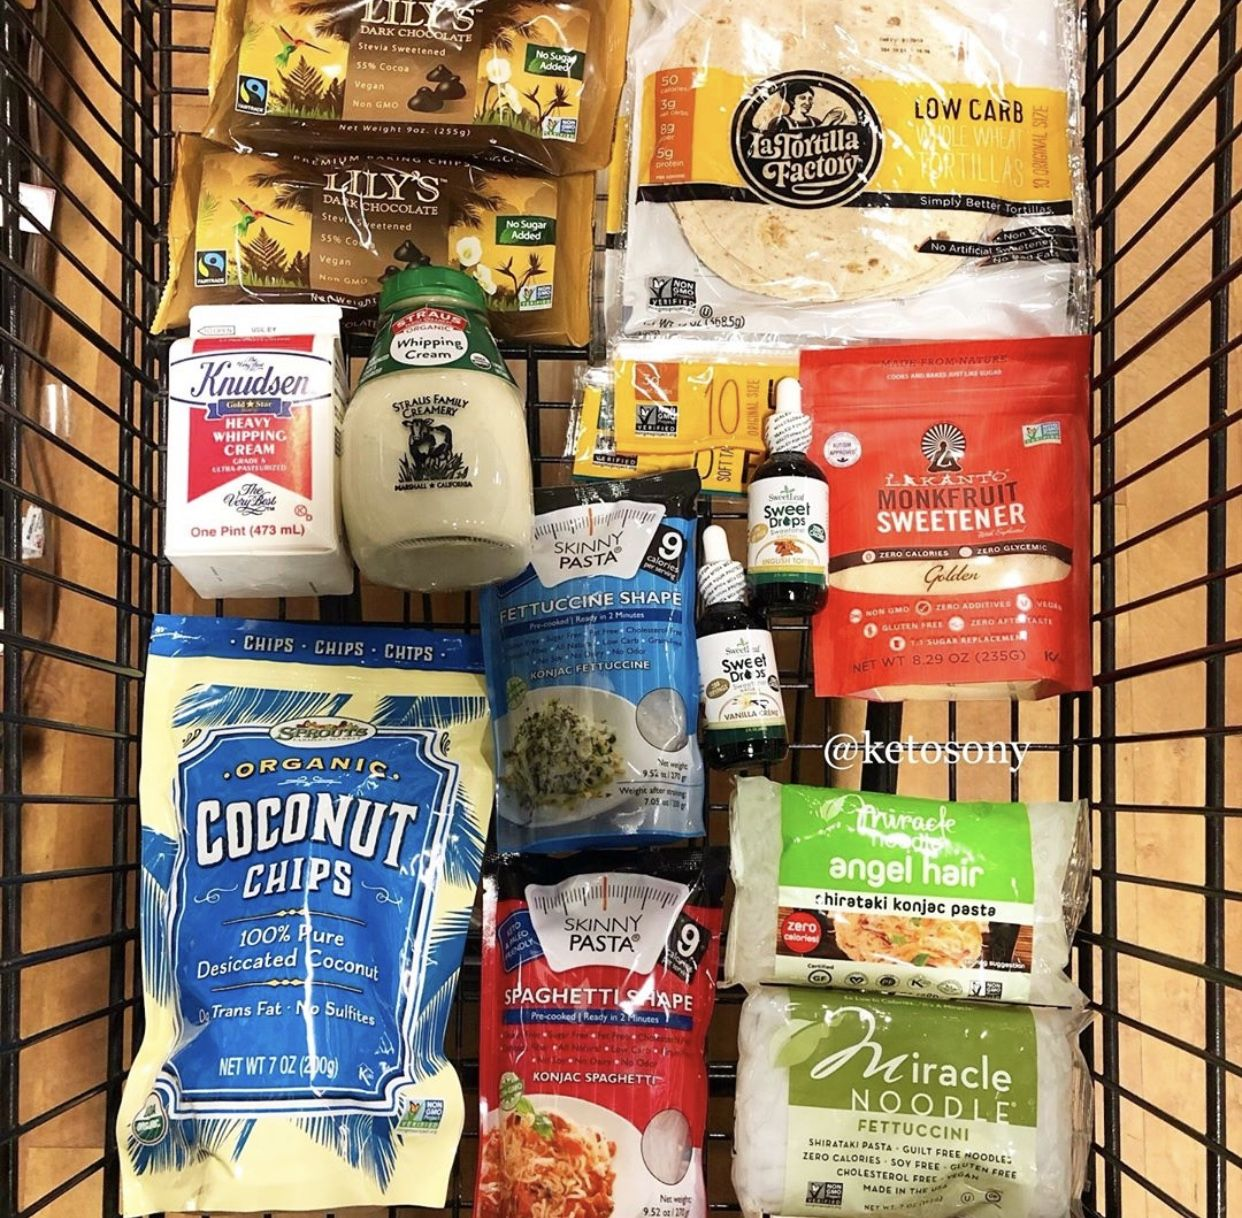 Sprouts Keto Grocery Haul Skinny Pasta Miracle Noodles Keto